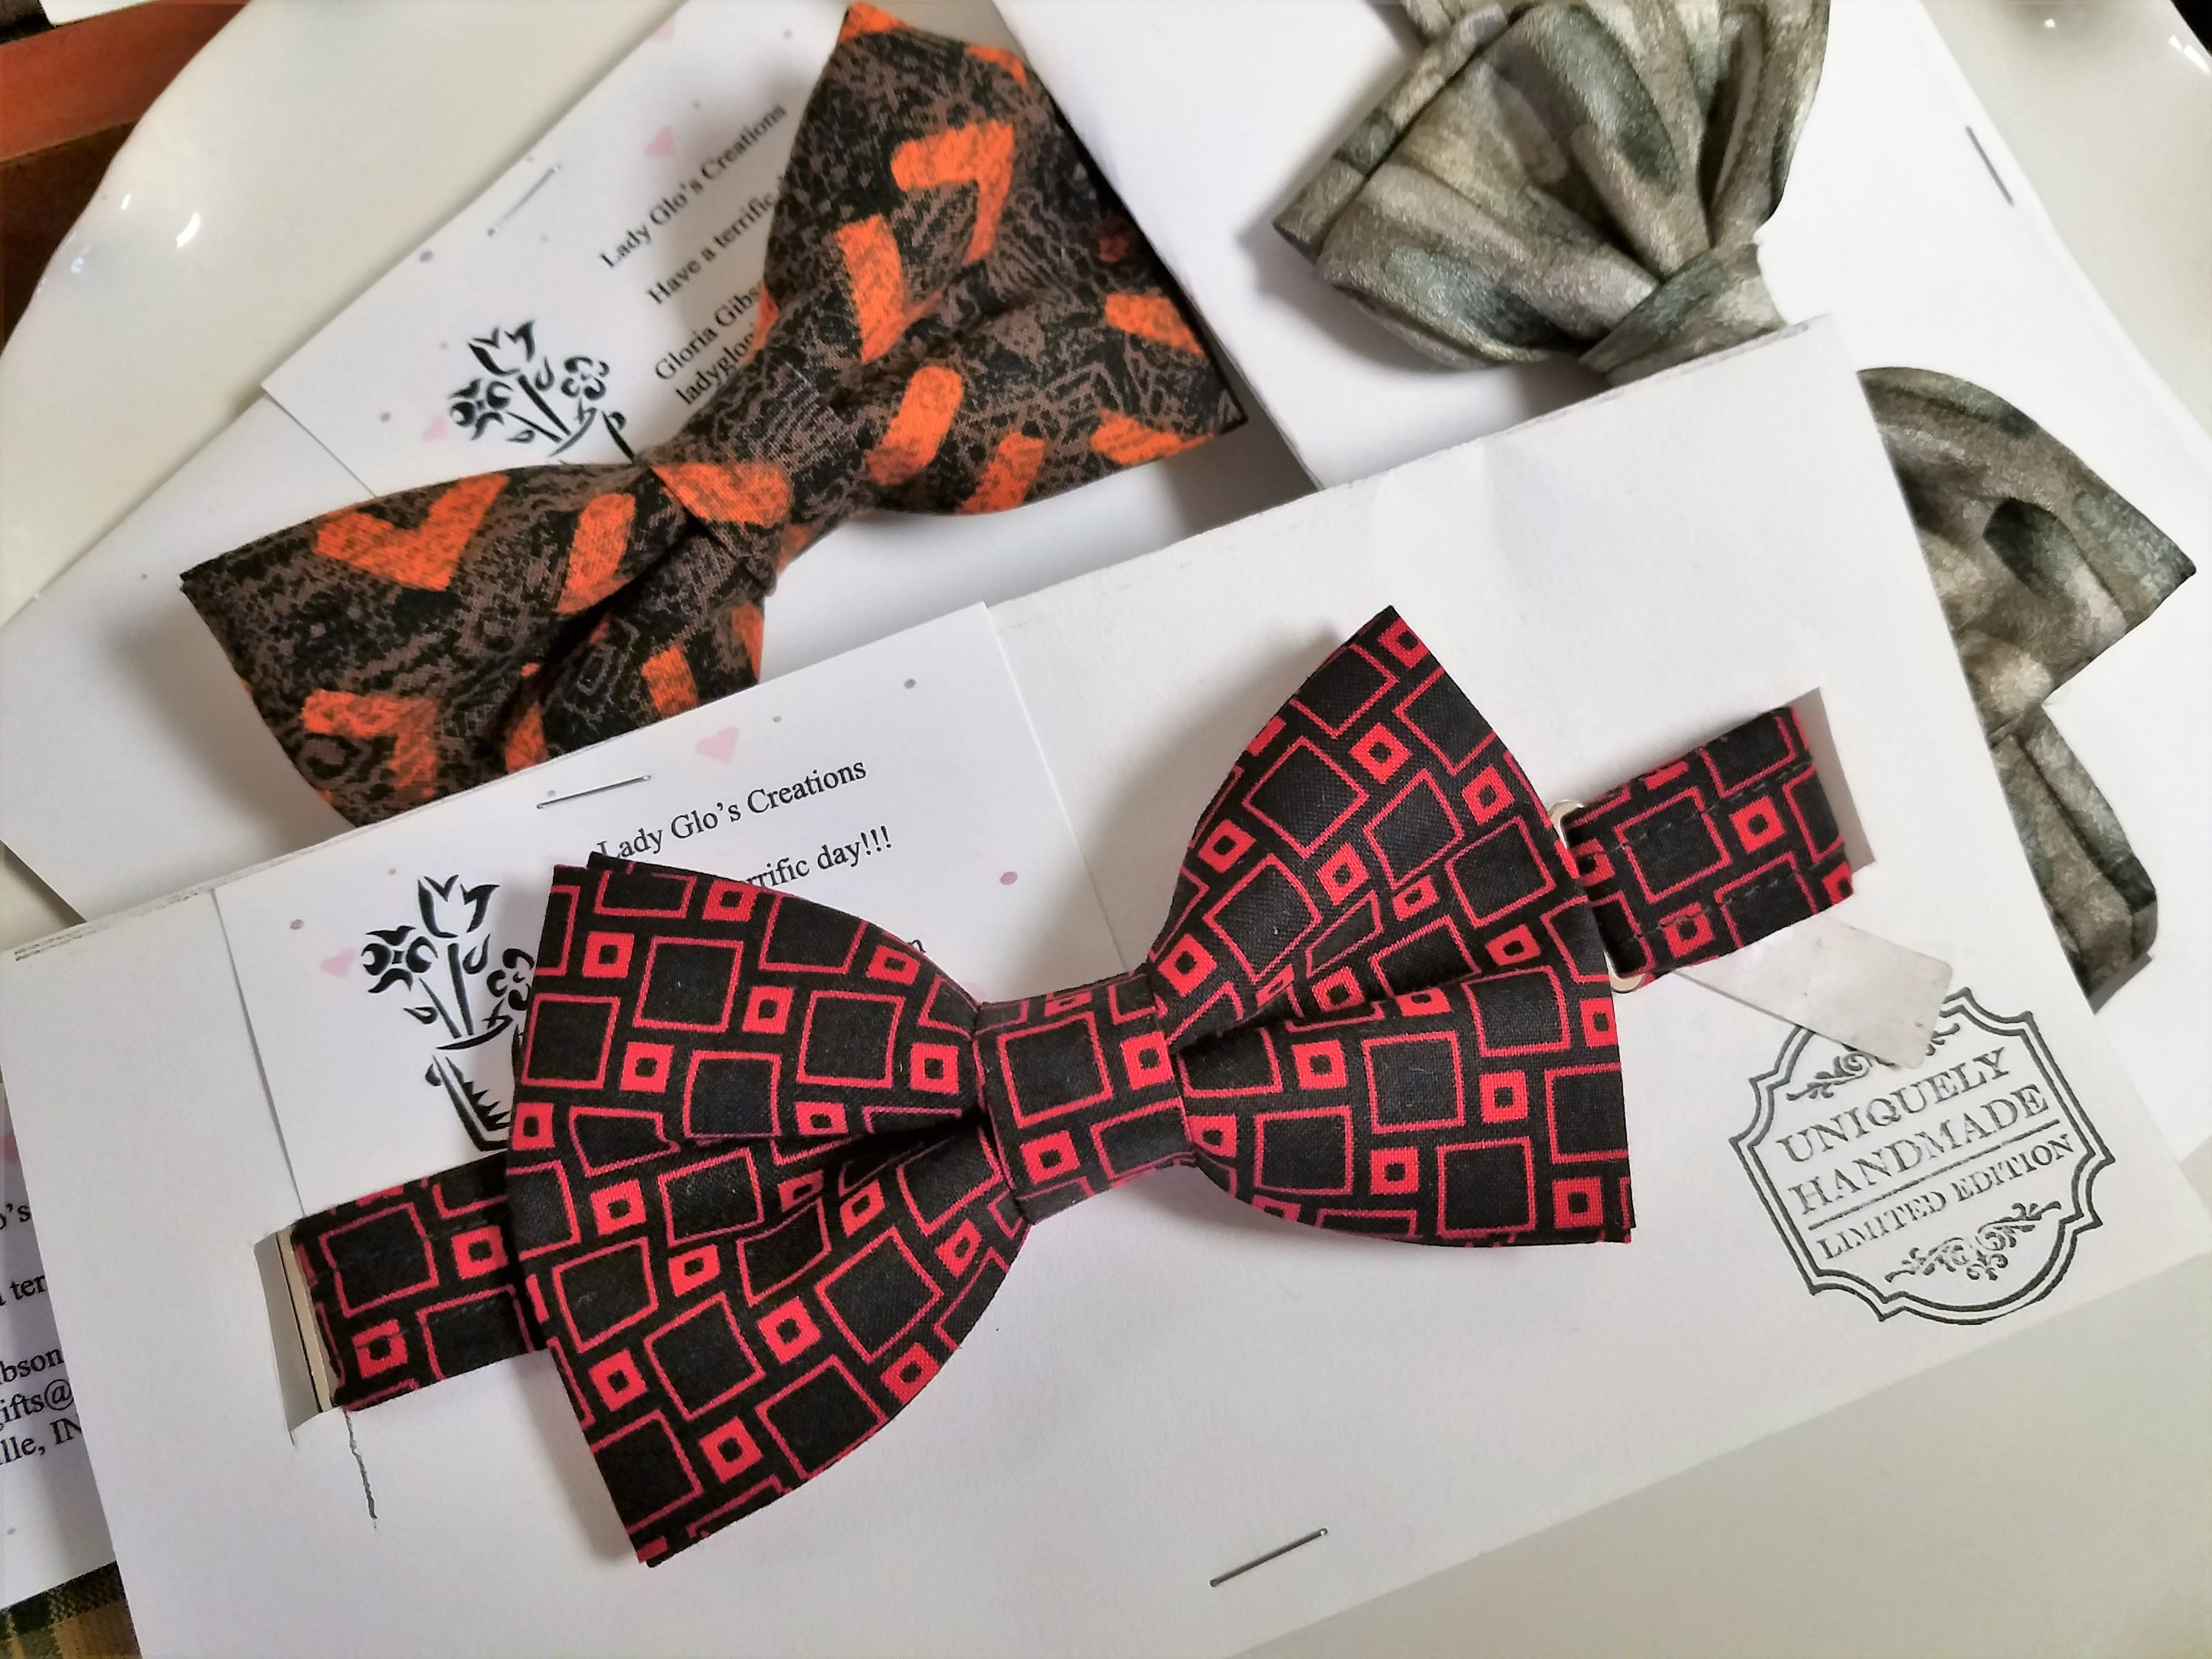 African American Museum, bow ties by Lady Glo's Creations.